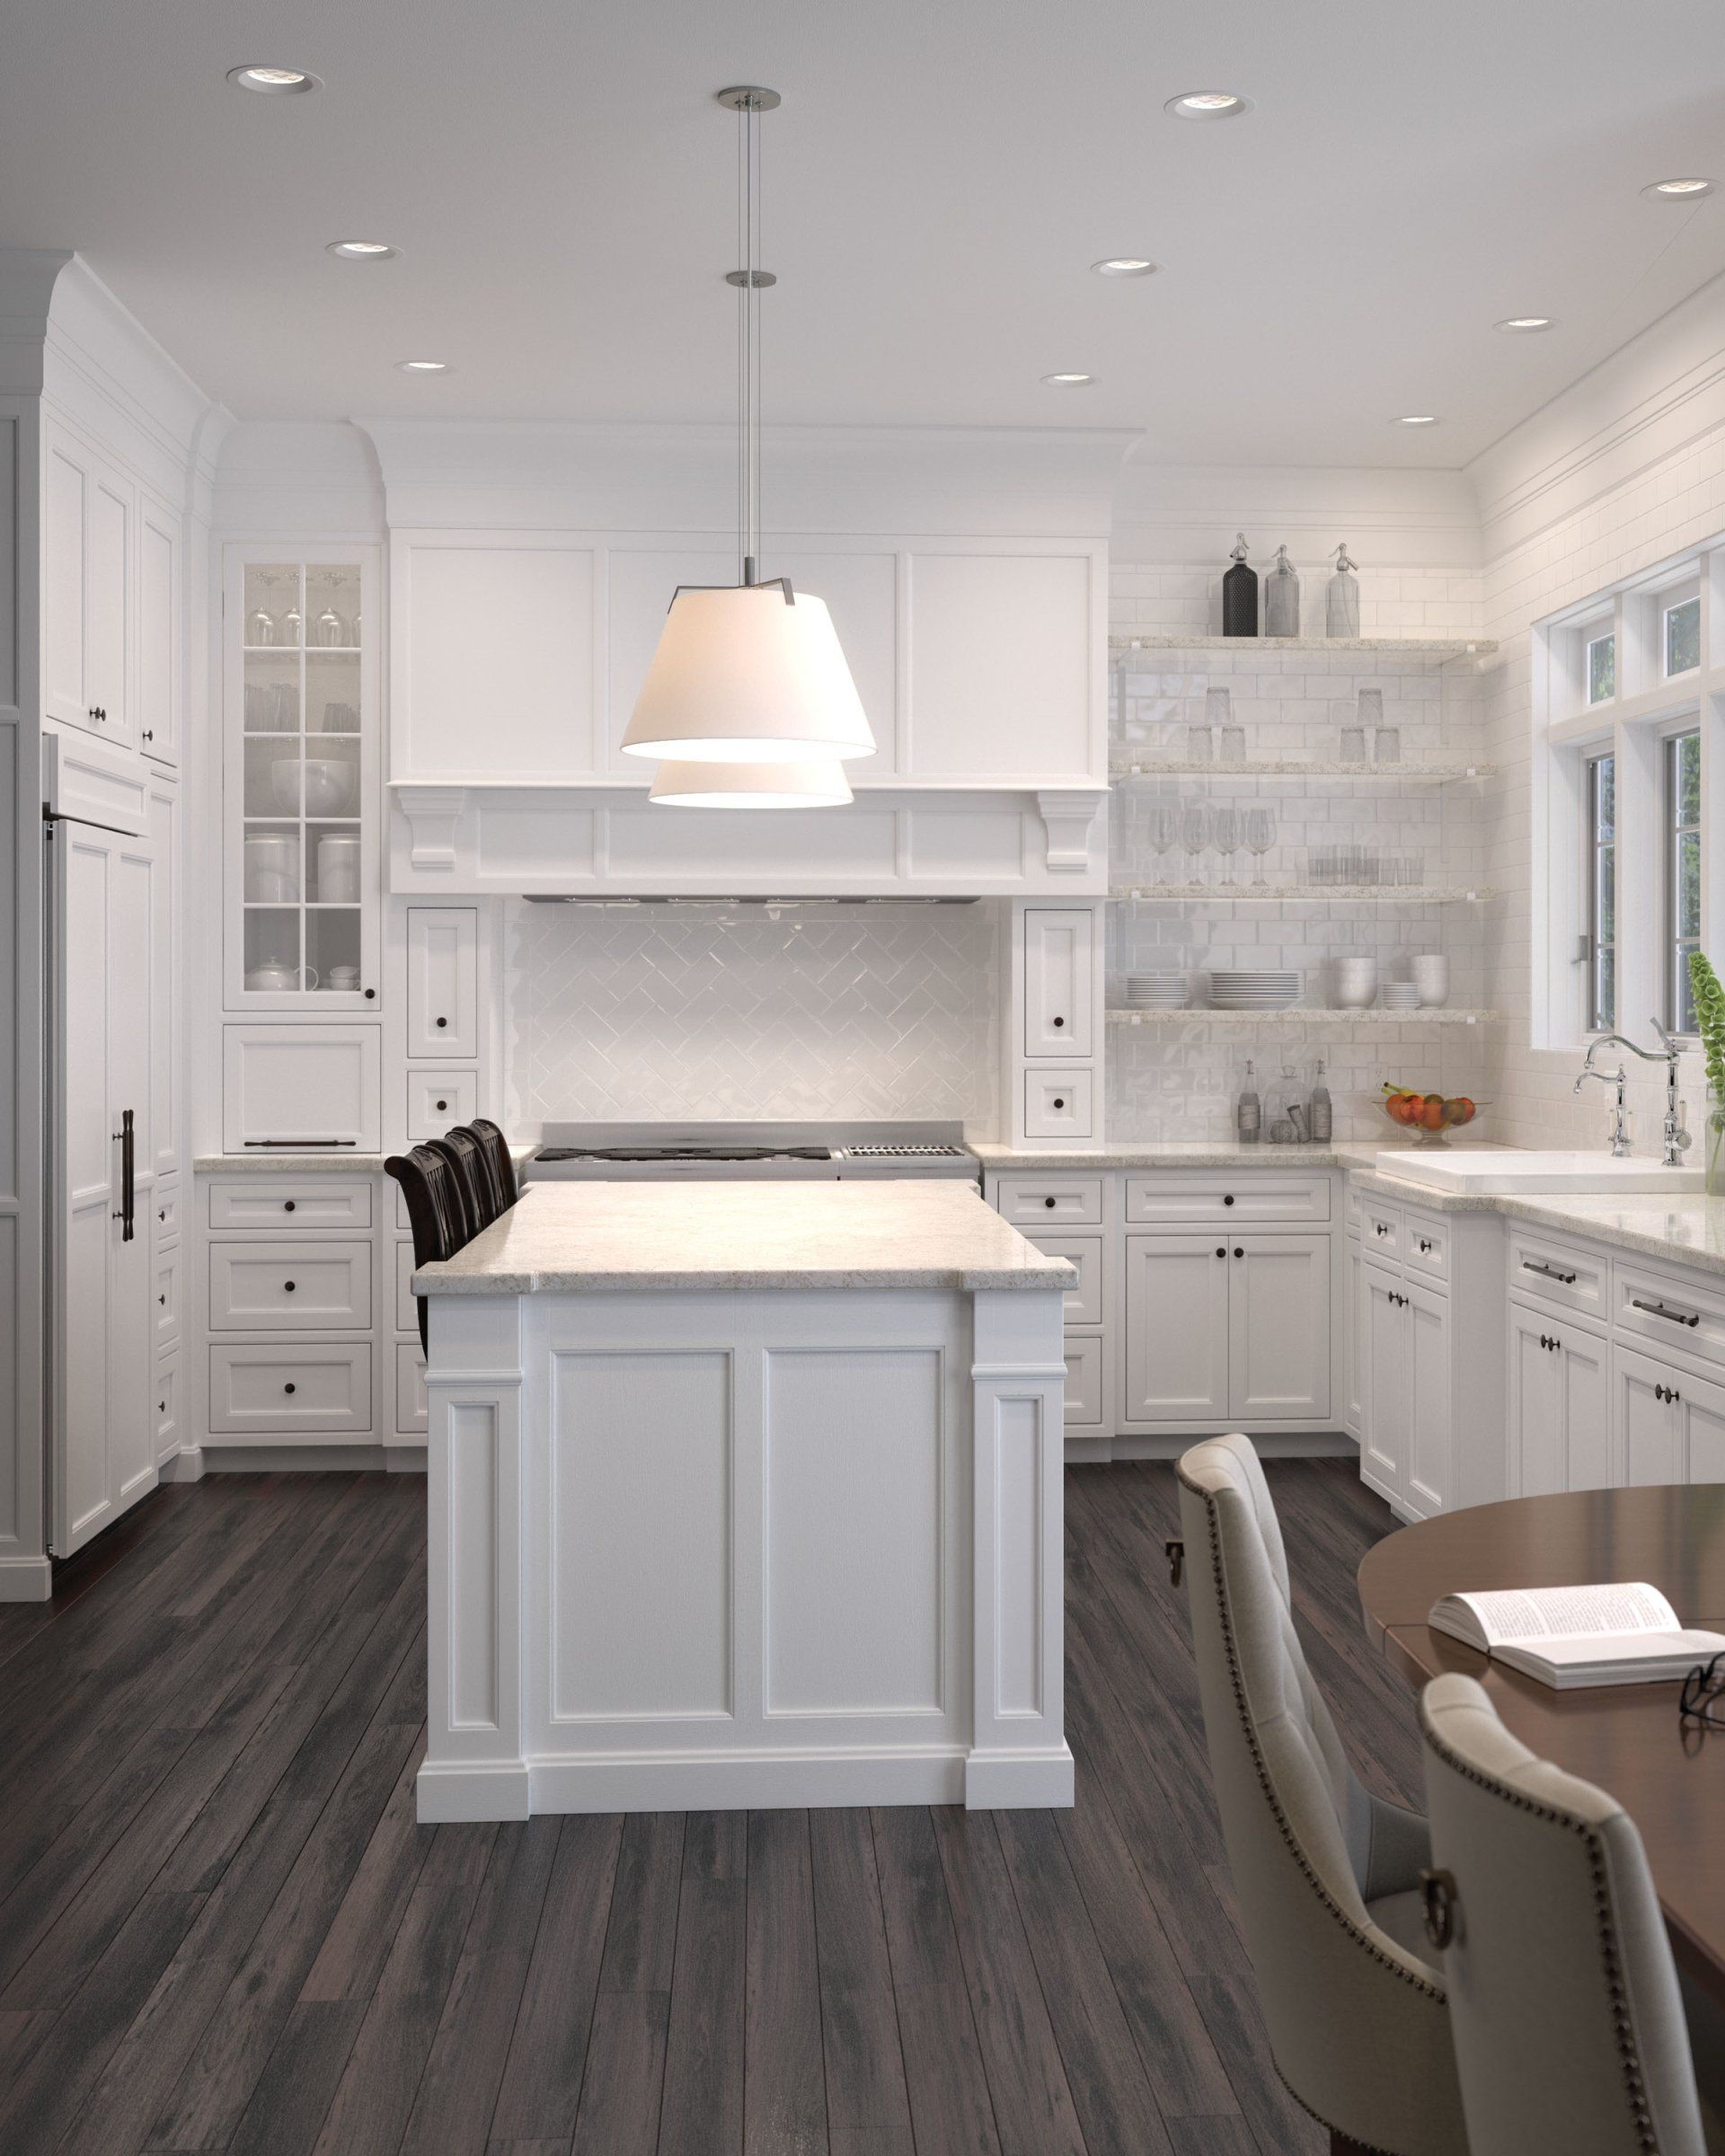 Kitchen Lighting Tip A Bright Ceiling Creates A Bright Kitchen